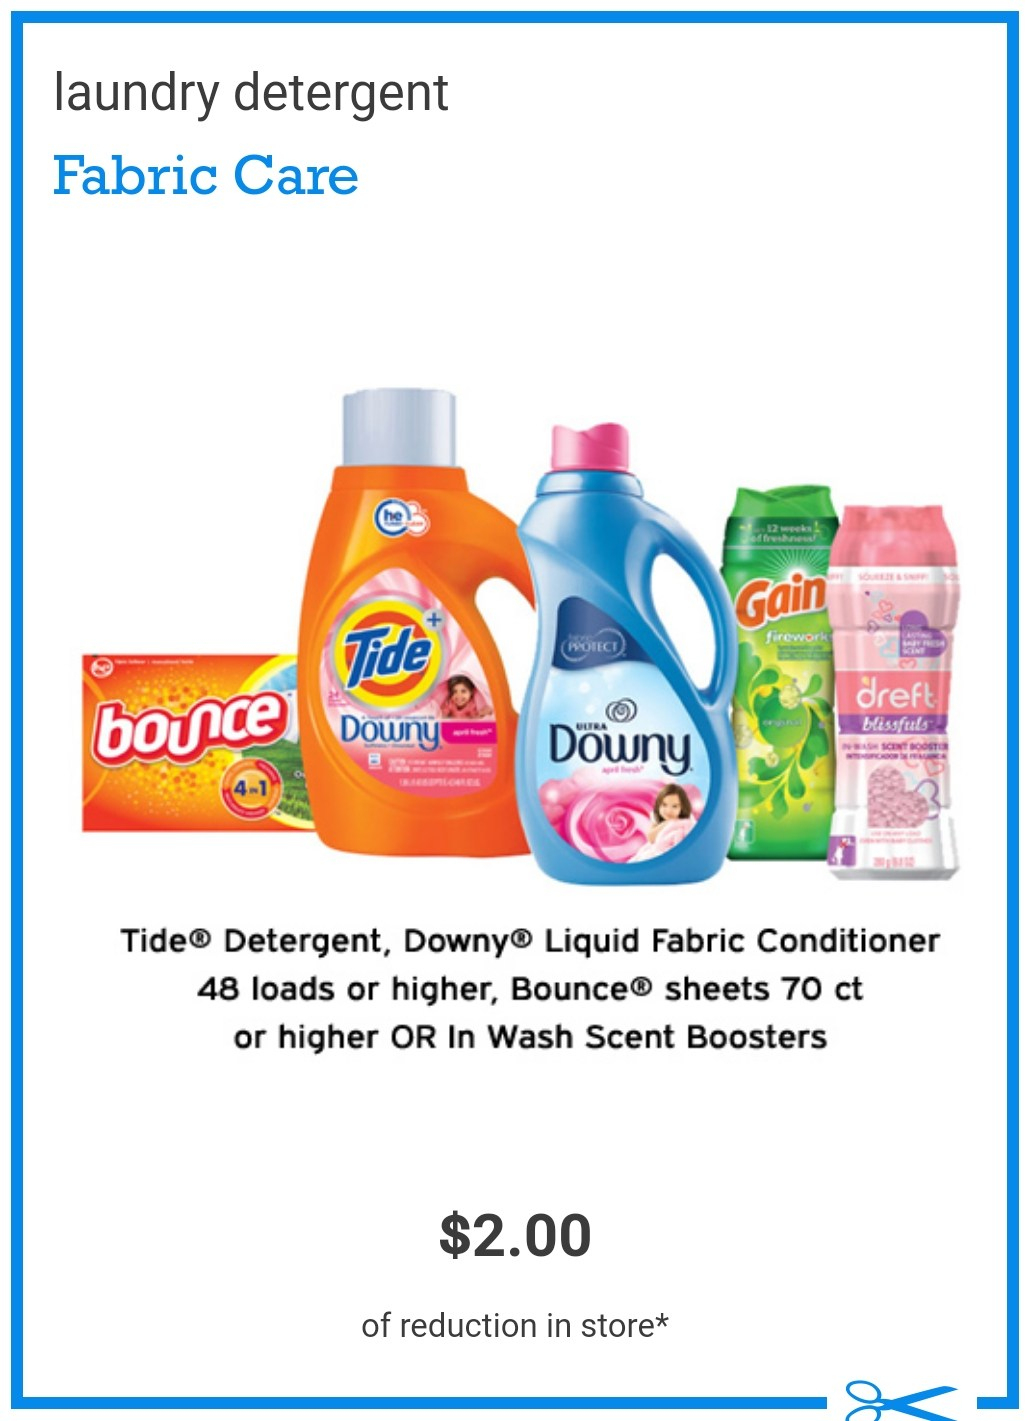 Gain Coupons Archives - Cfl Coupon Moms - Free Printable Gain Laundry Detergent Coupons